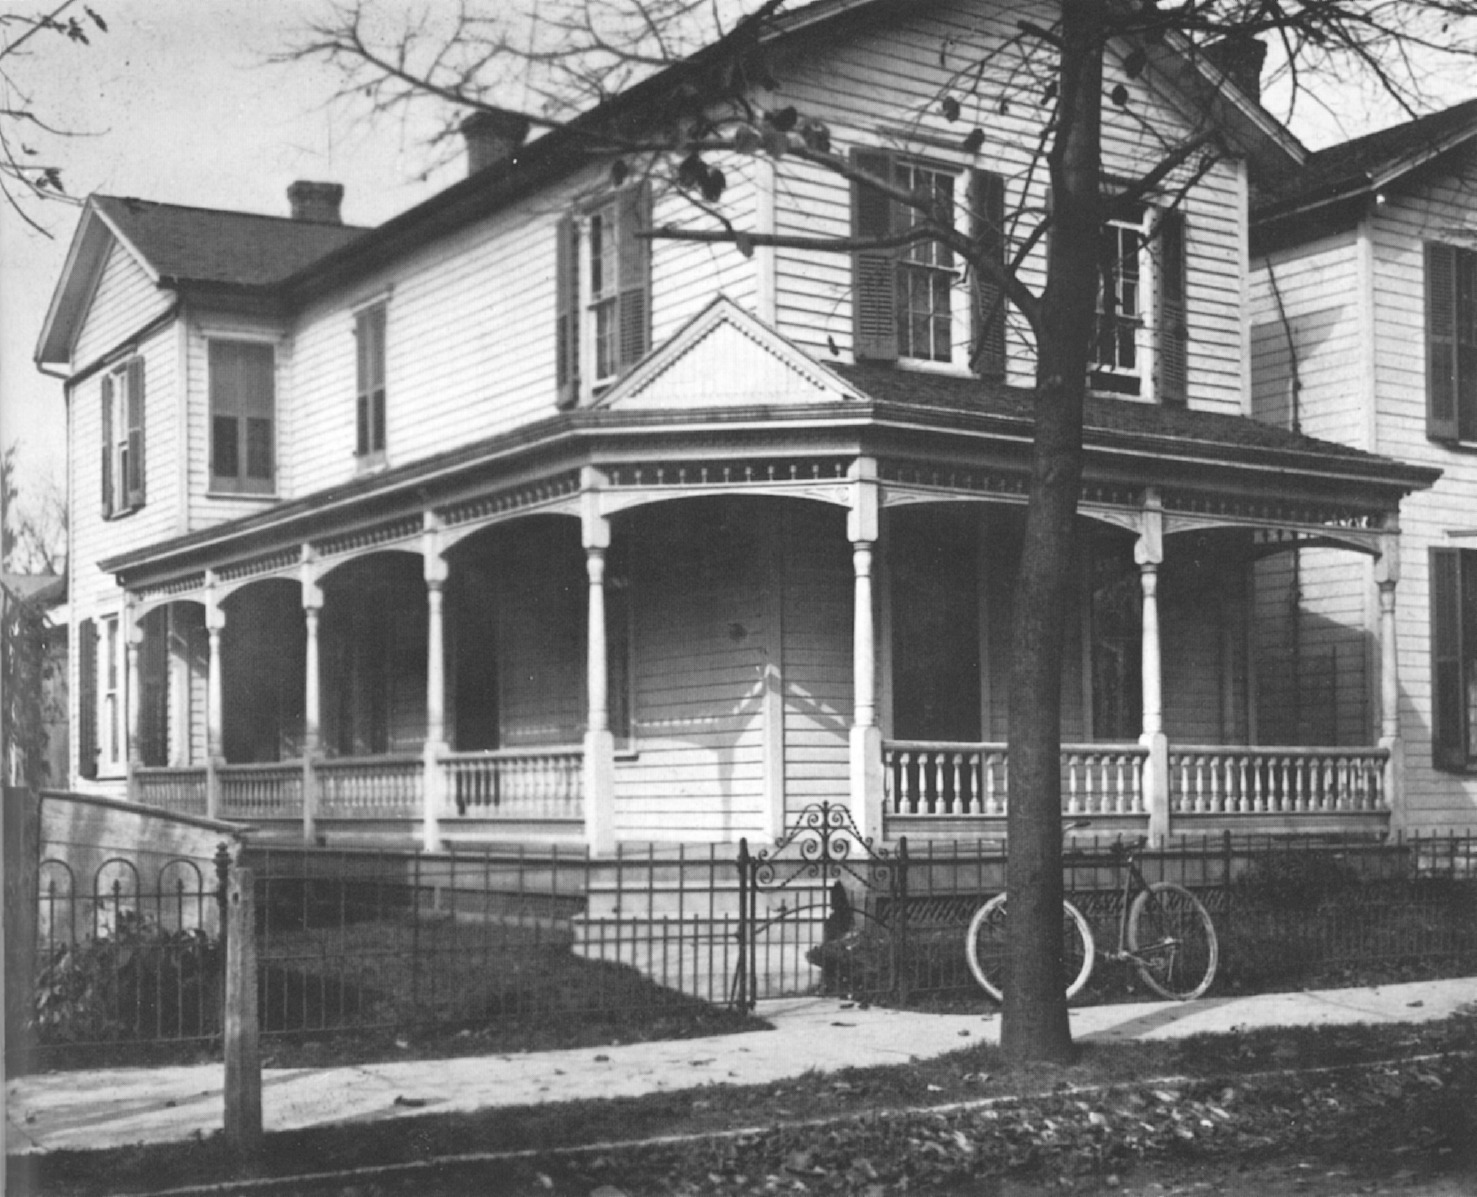 Wright photos 1898 the wright home at 7 hawthorne street in dayton ohio both the home and the bicycle shop were later moved to greenfield village at the henry ford malvernweather Images